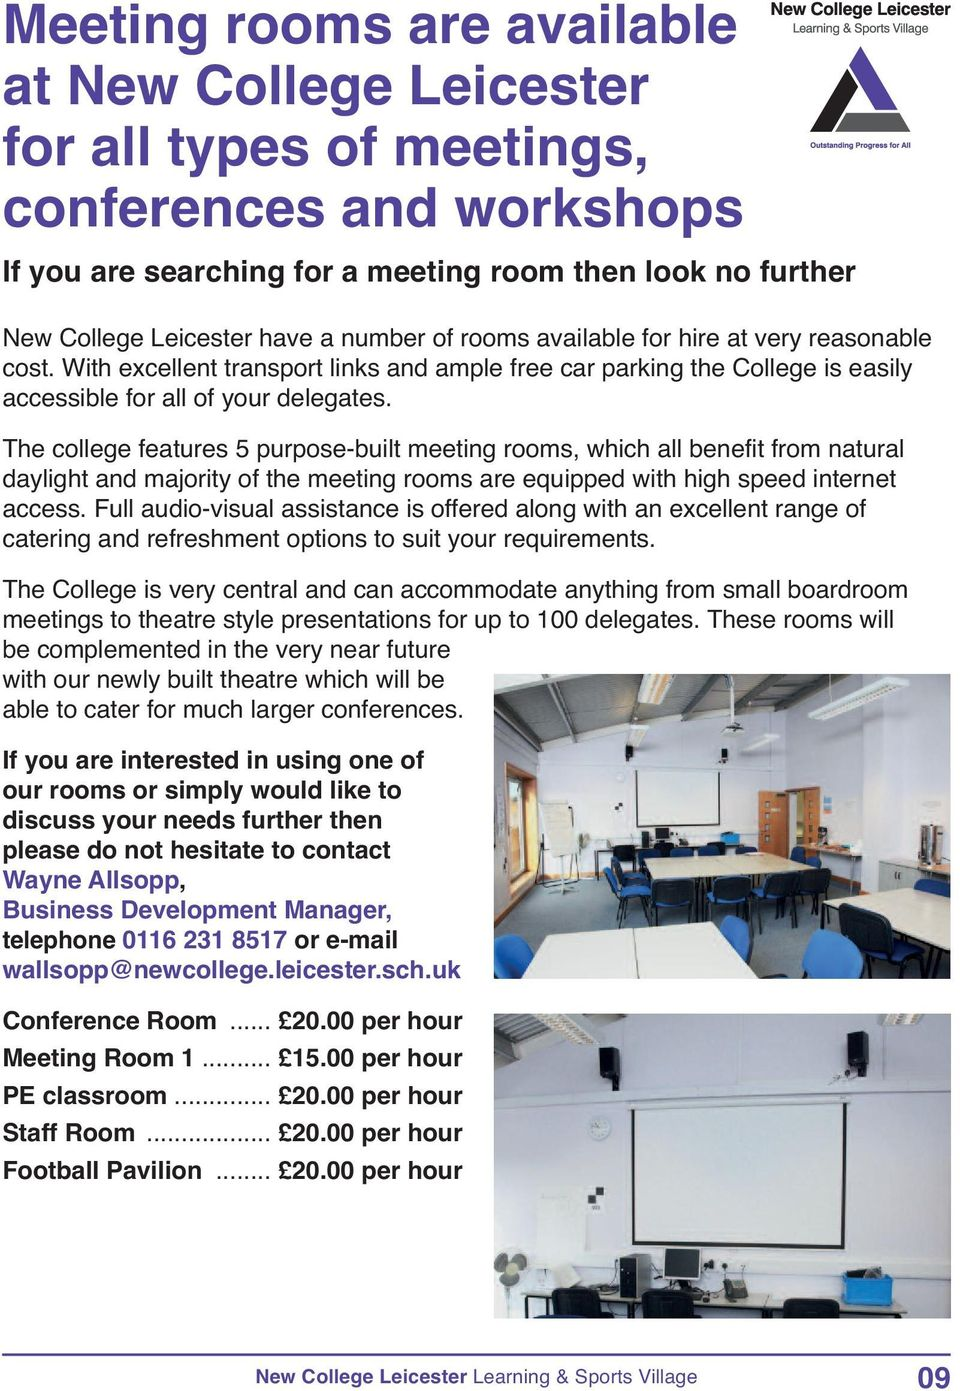 The college features 5 purpose-built meeting rooms, which all benefit from natural daylight and majority of the meeting rooms are equipped with high speed internet access.